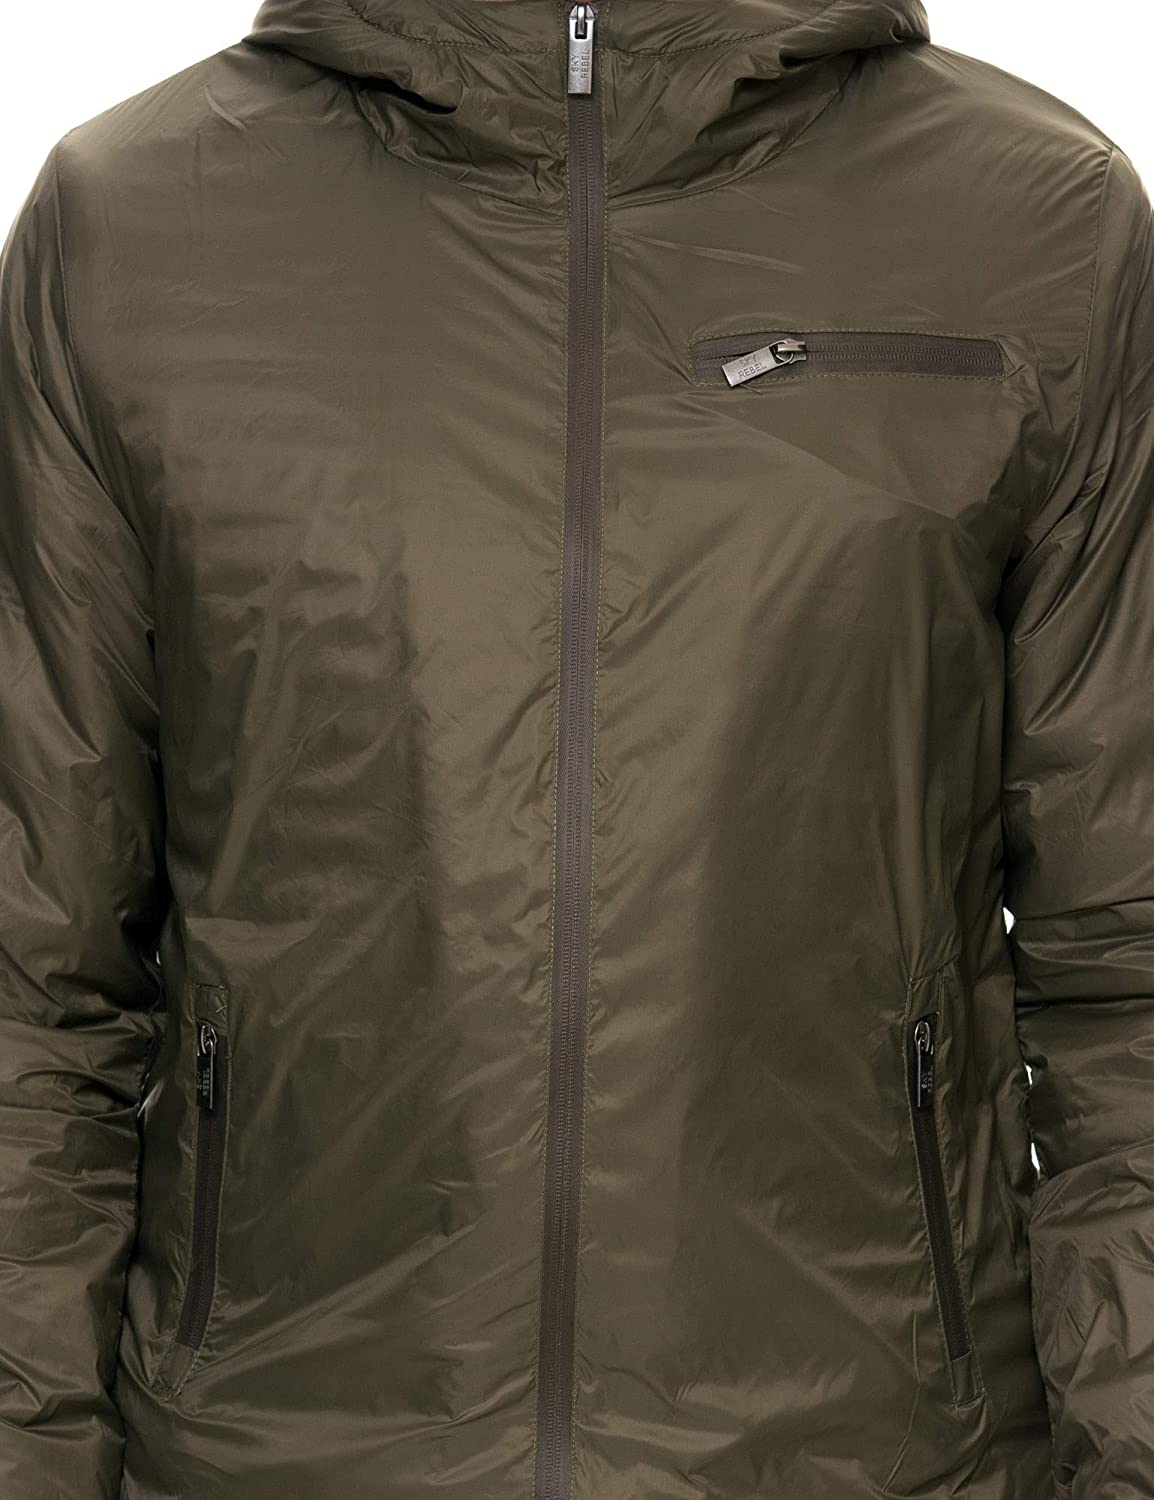 Sky Rebel Mens Khaki Jacket with Hood